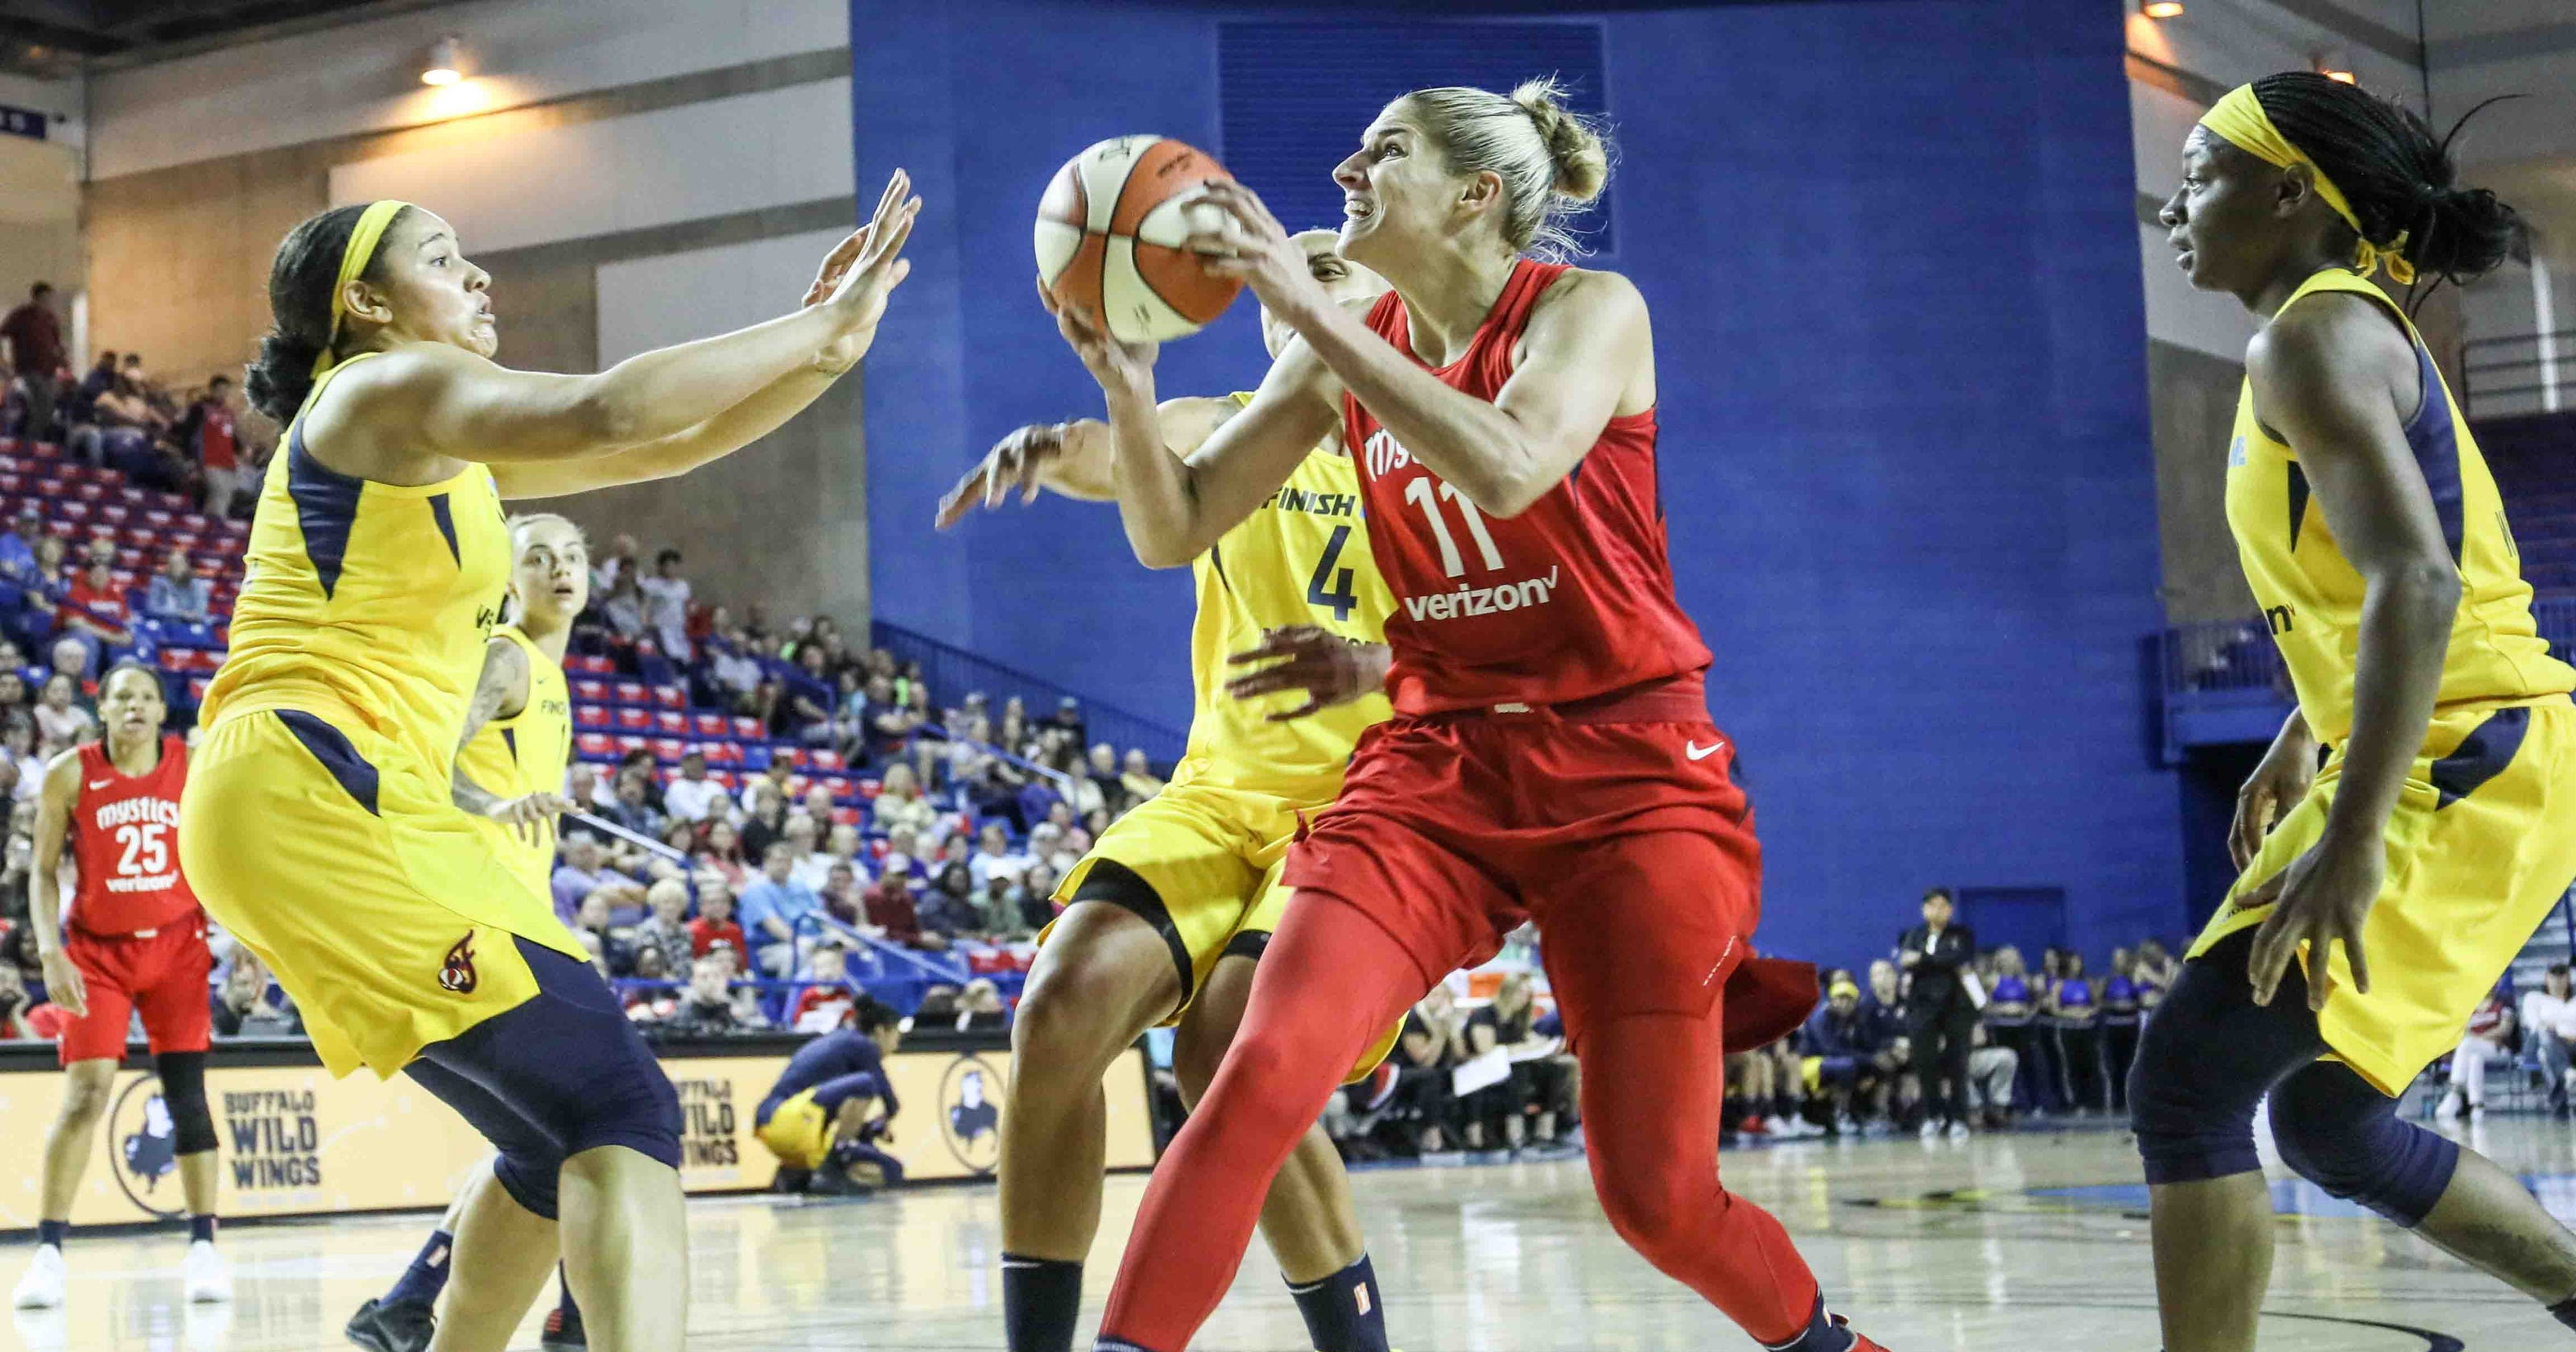 bce59cc2aab8 Big basketball year for Elena Delle Donne includes stop at Delaware